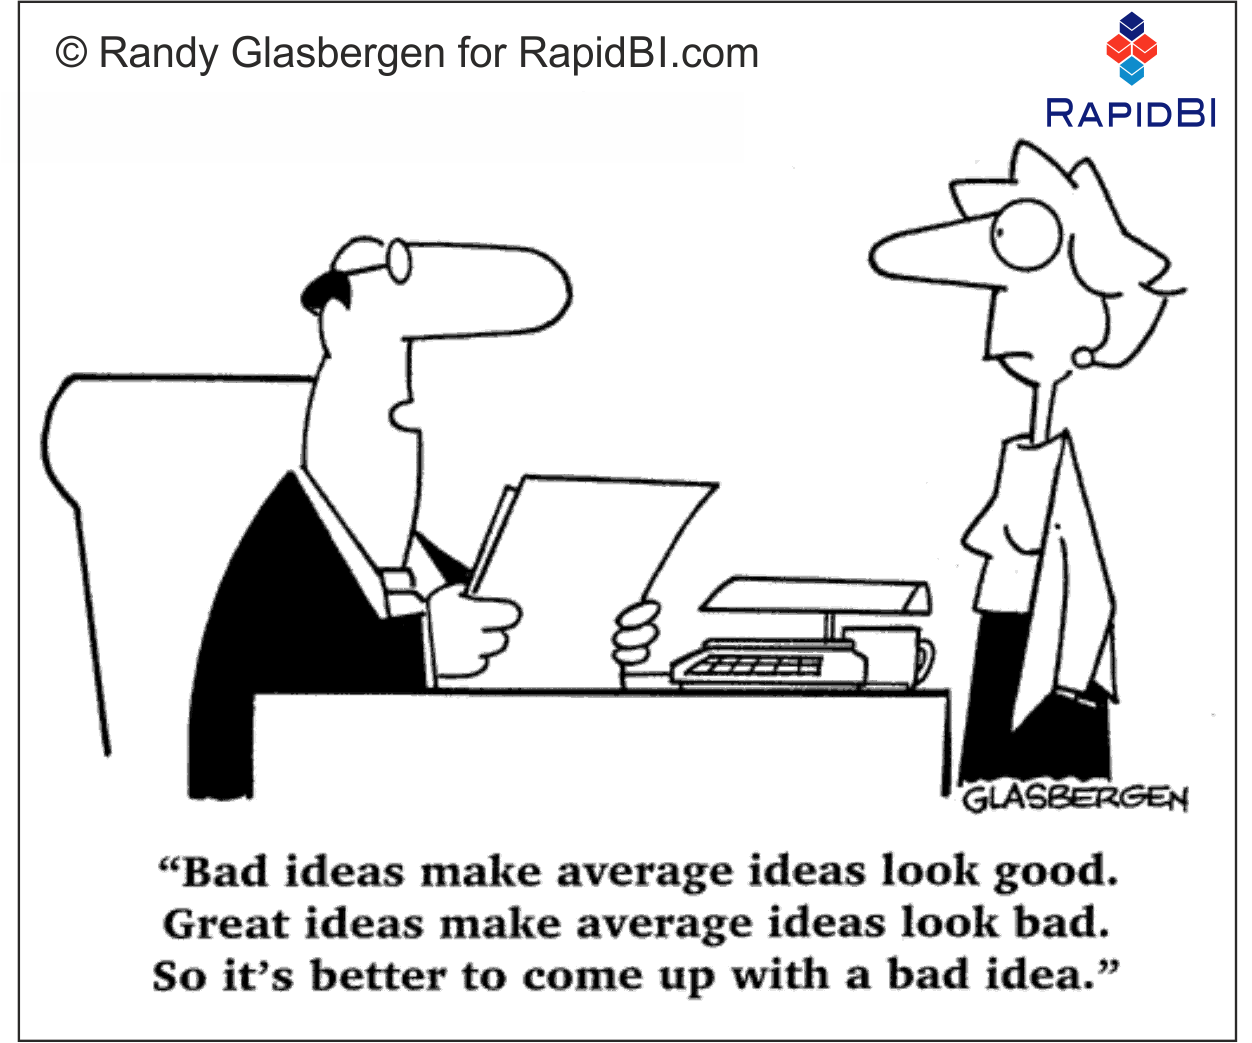 How to make a business out of an idea